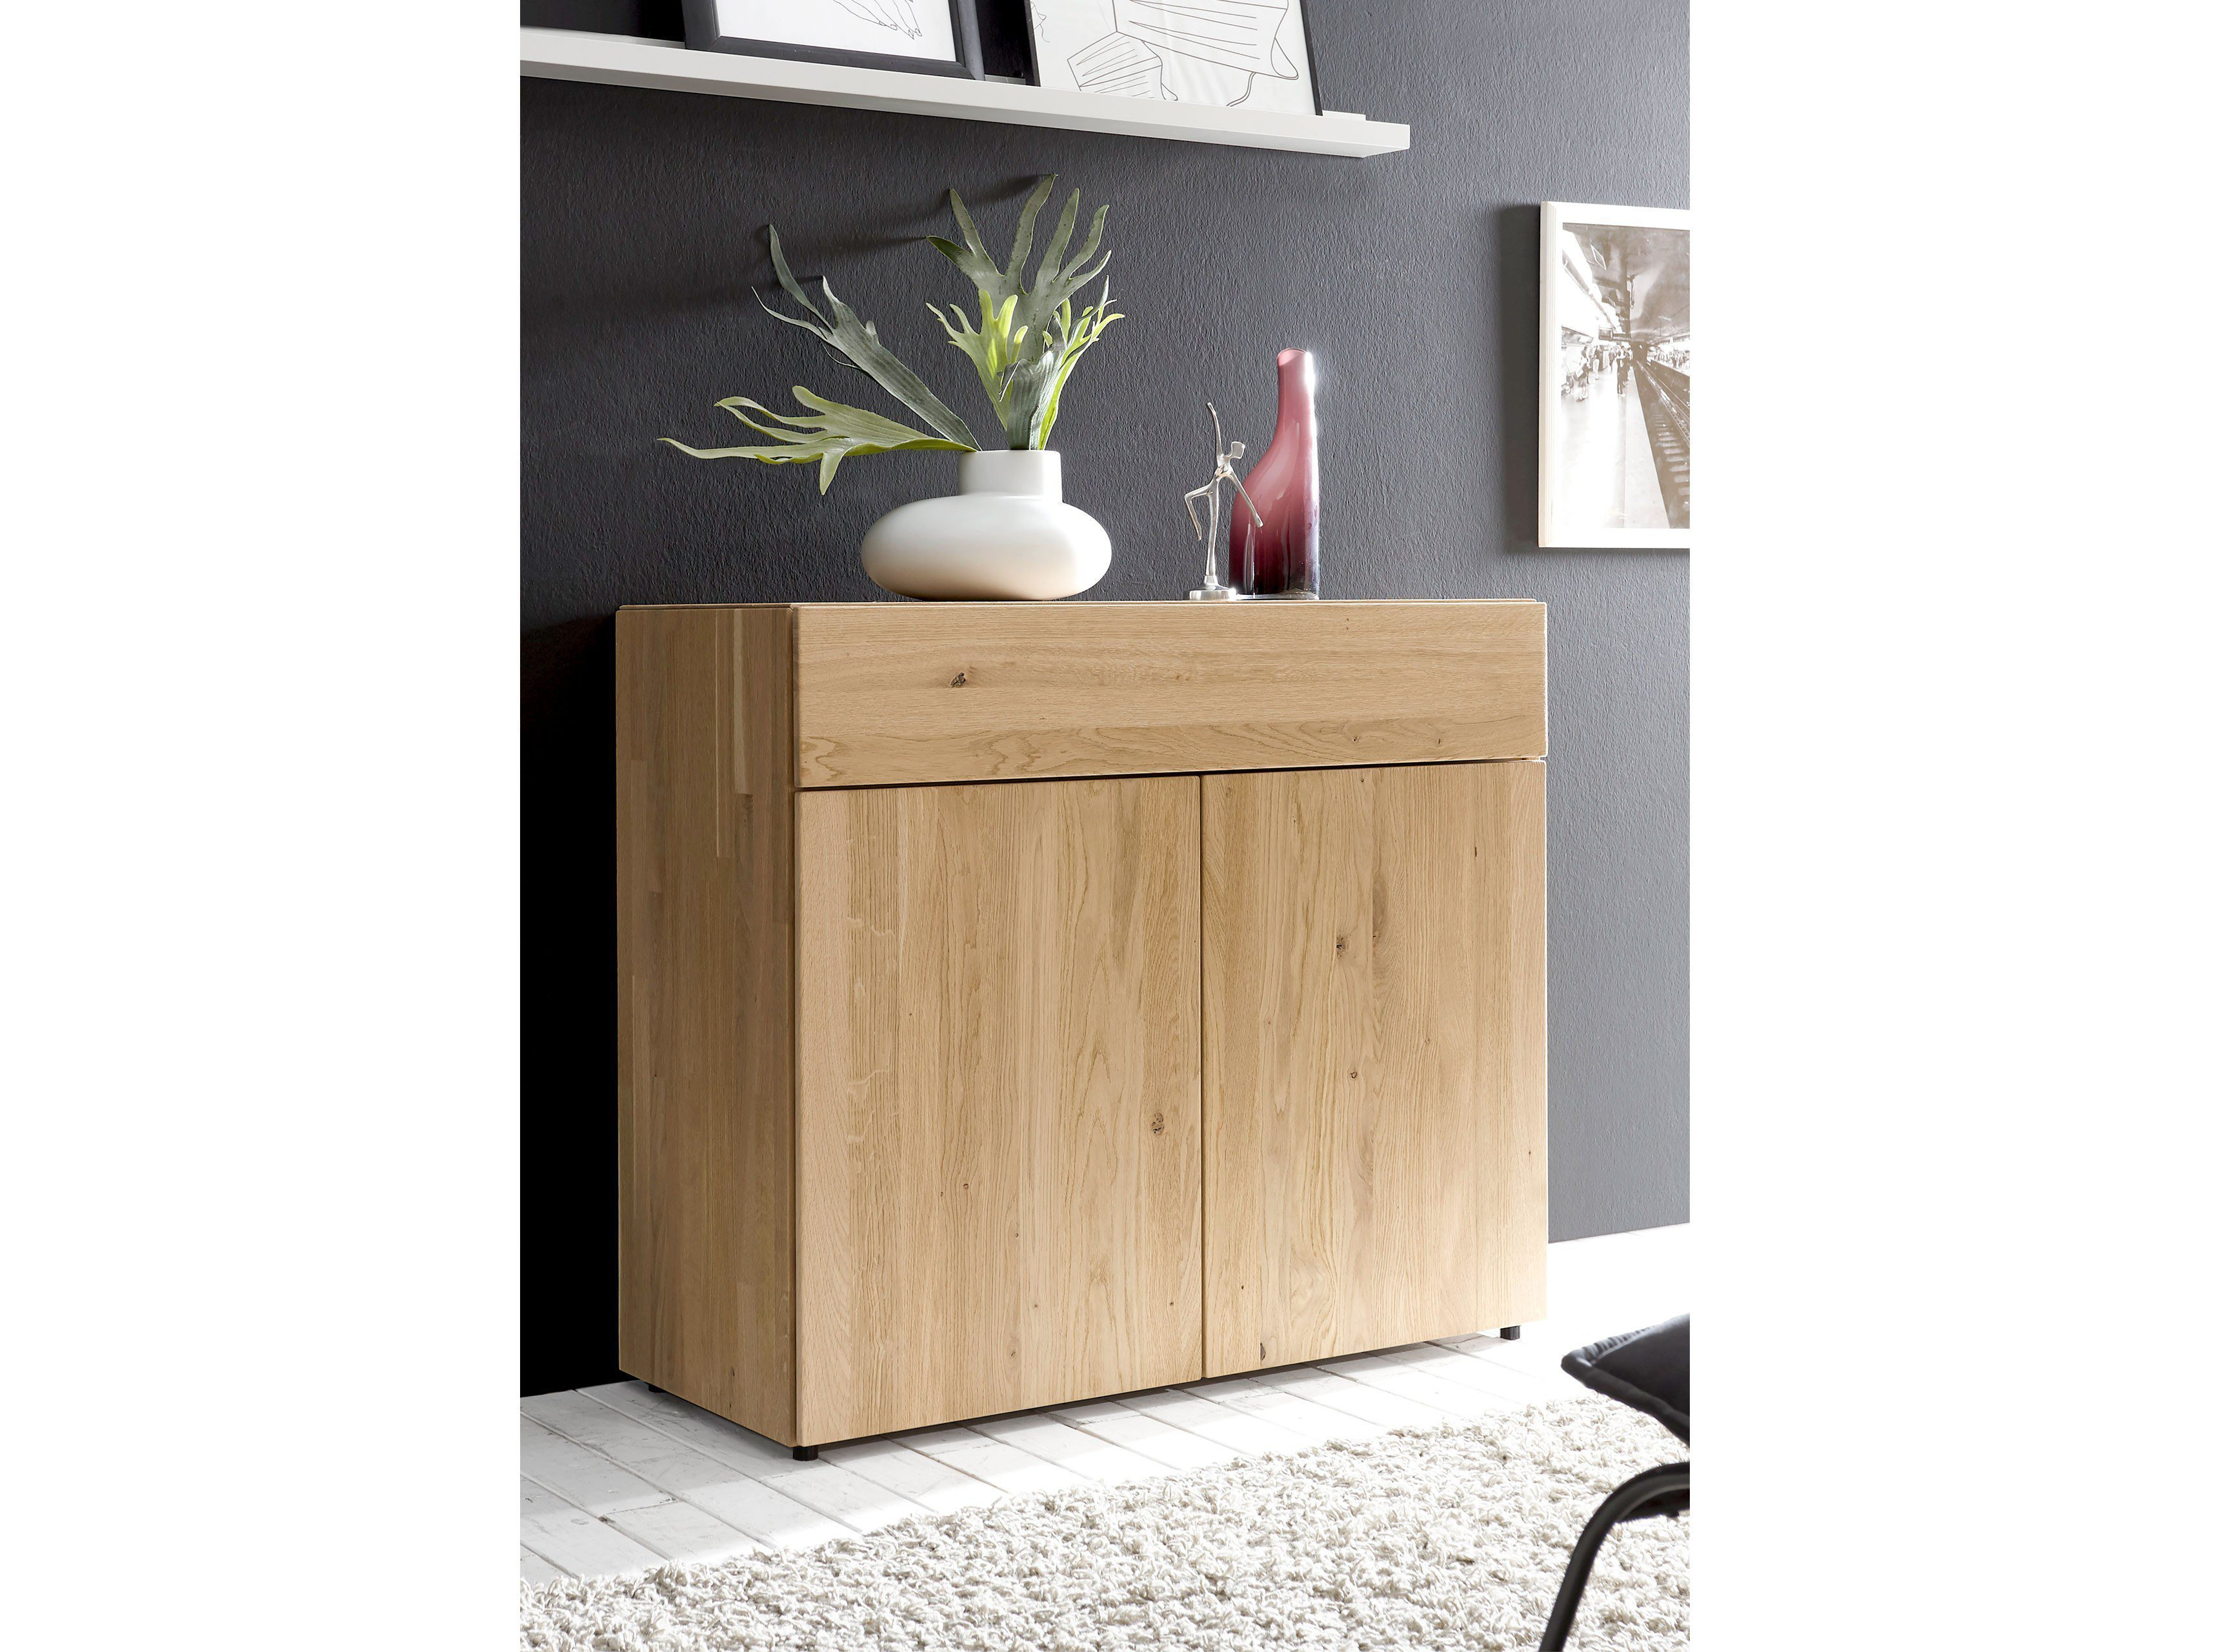 loddenkemper leno kommode eiche massiv m bel letz ihr. Black Bedroom Furniture Sets. Home Design Ideas